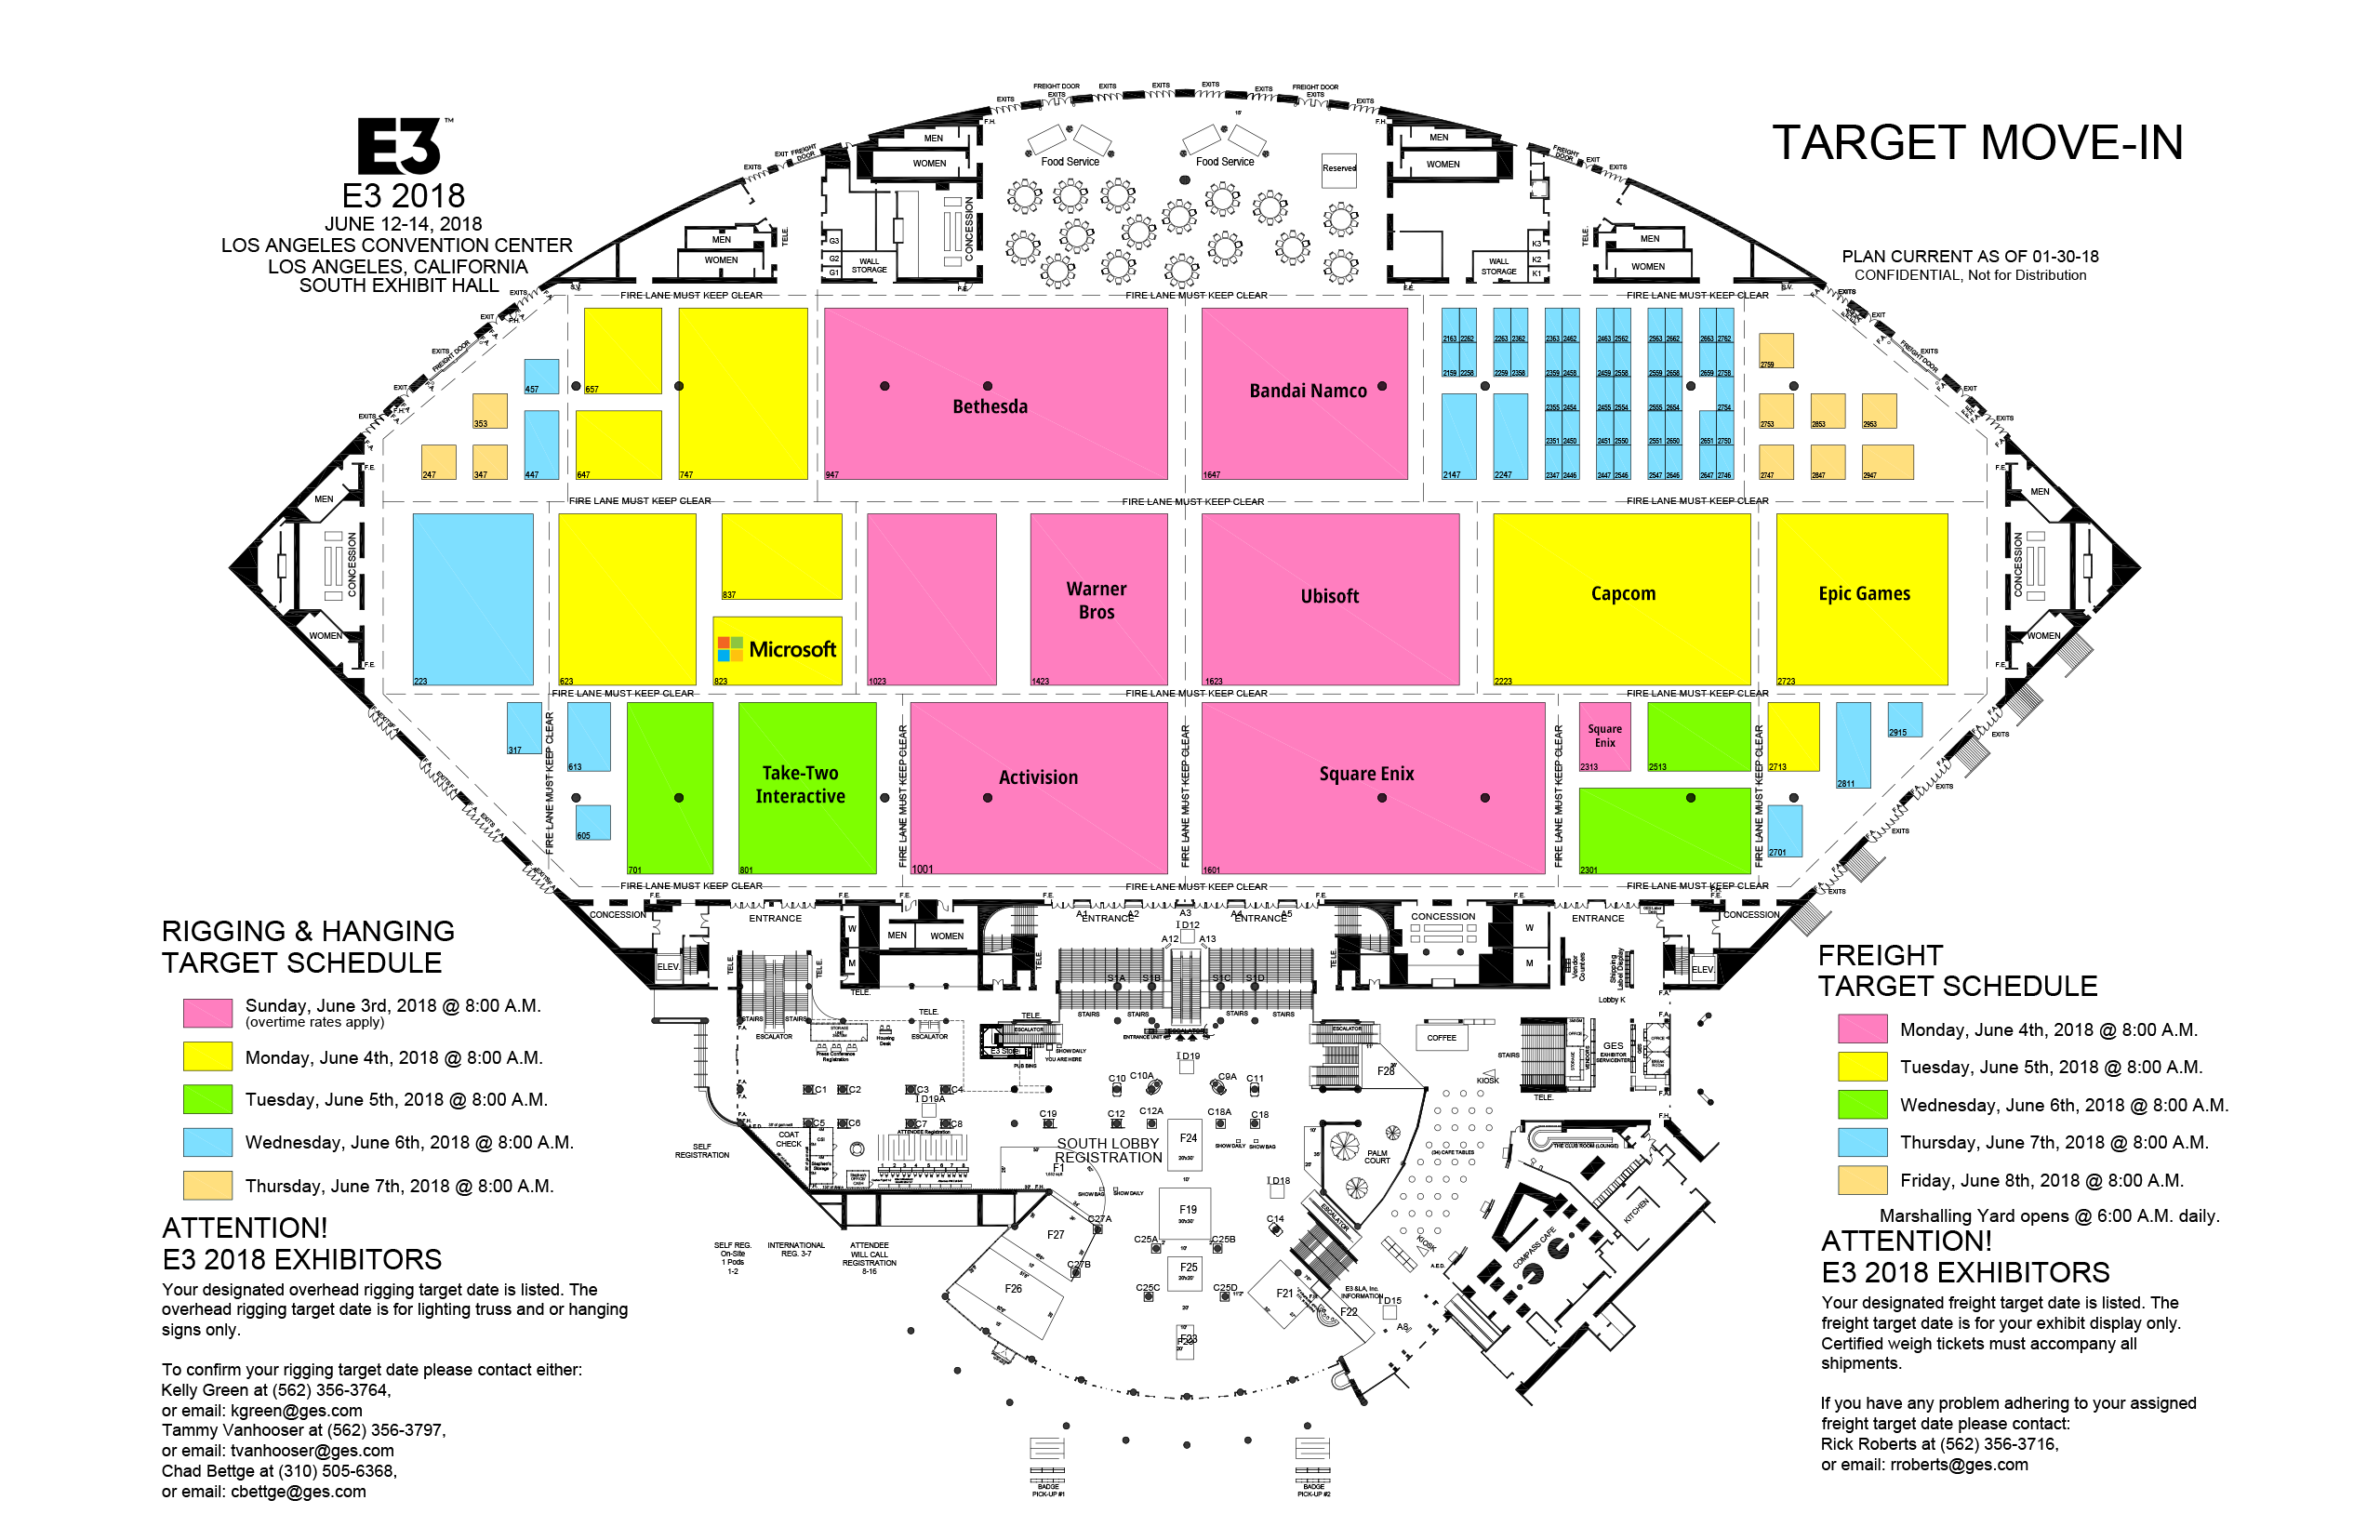 Preliminary E3 2018 Floor Plans revealed, confirms Activision will